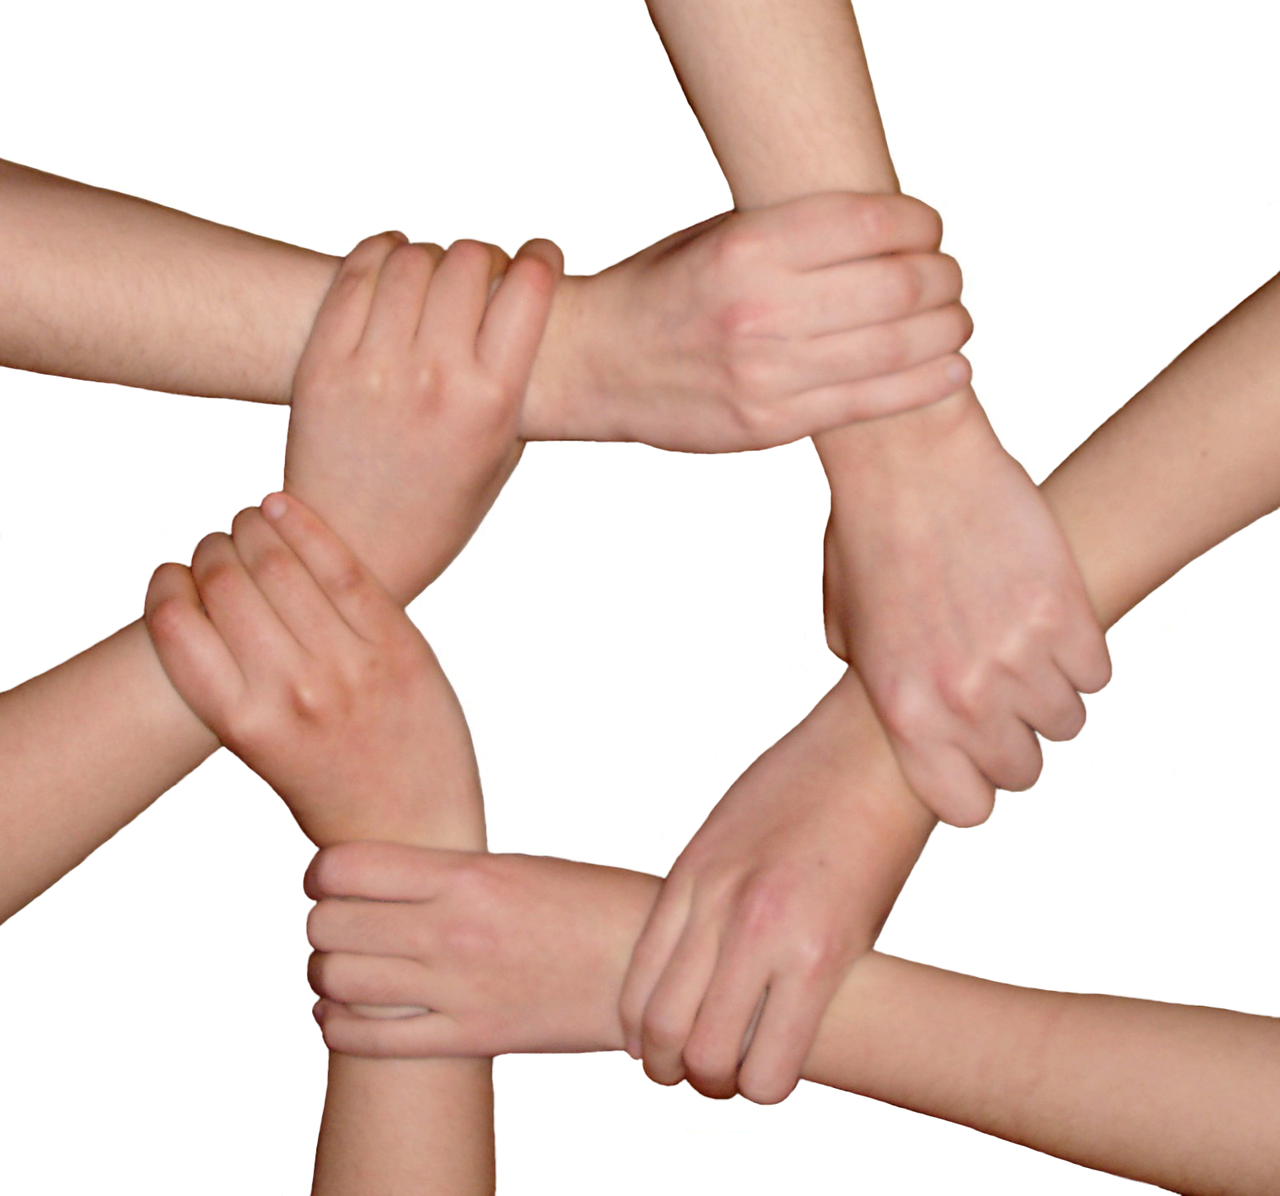 Circle Of Hands By Circleoffriends Hand Pictures Holding Hands Images Hand Images